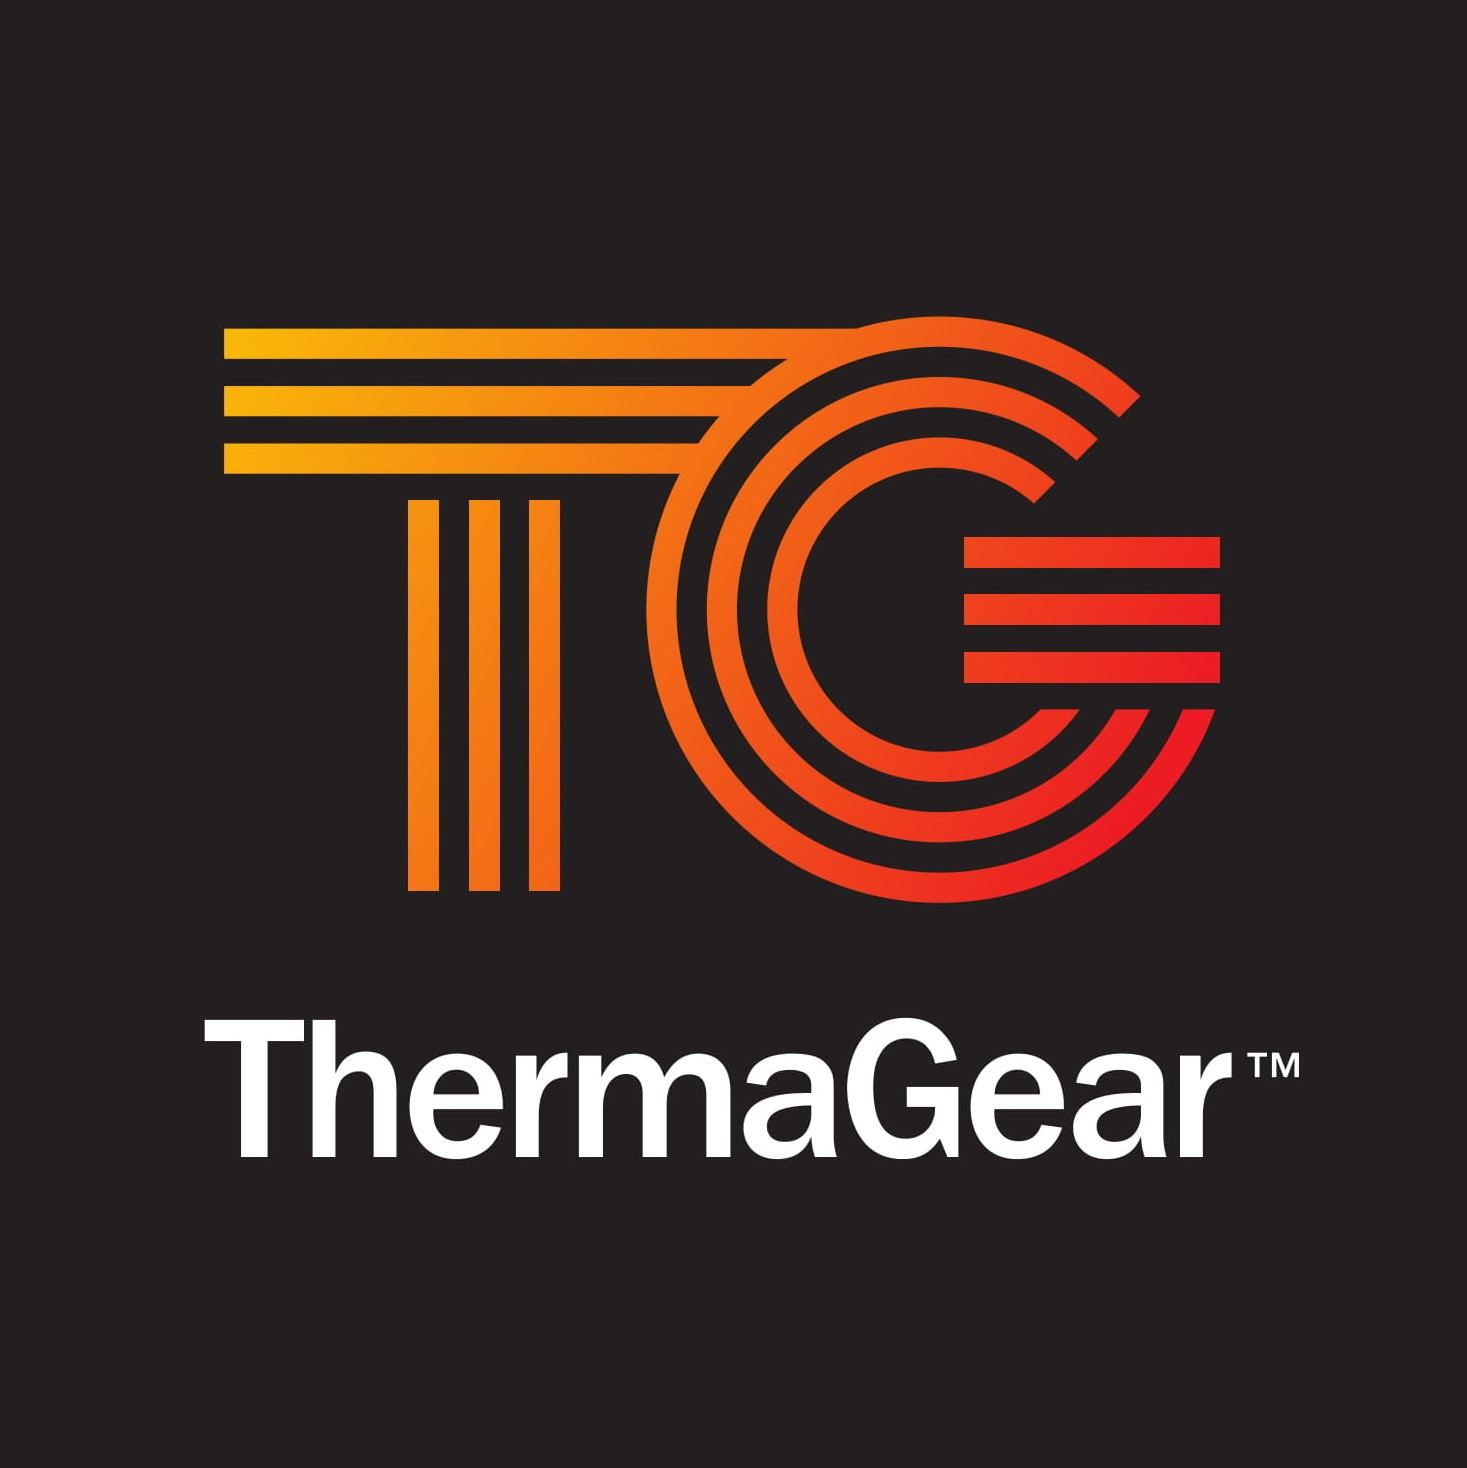 ThermaGear